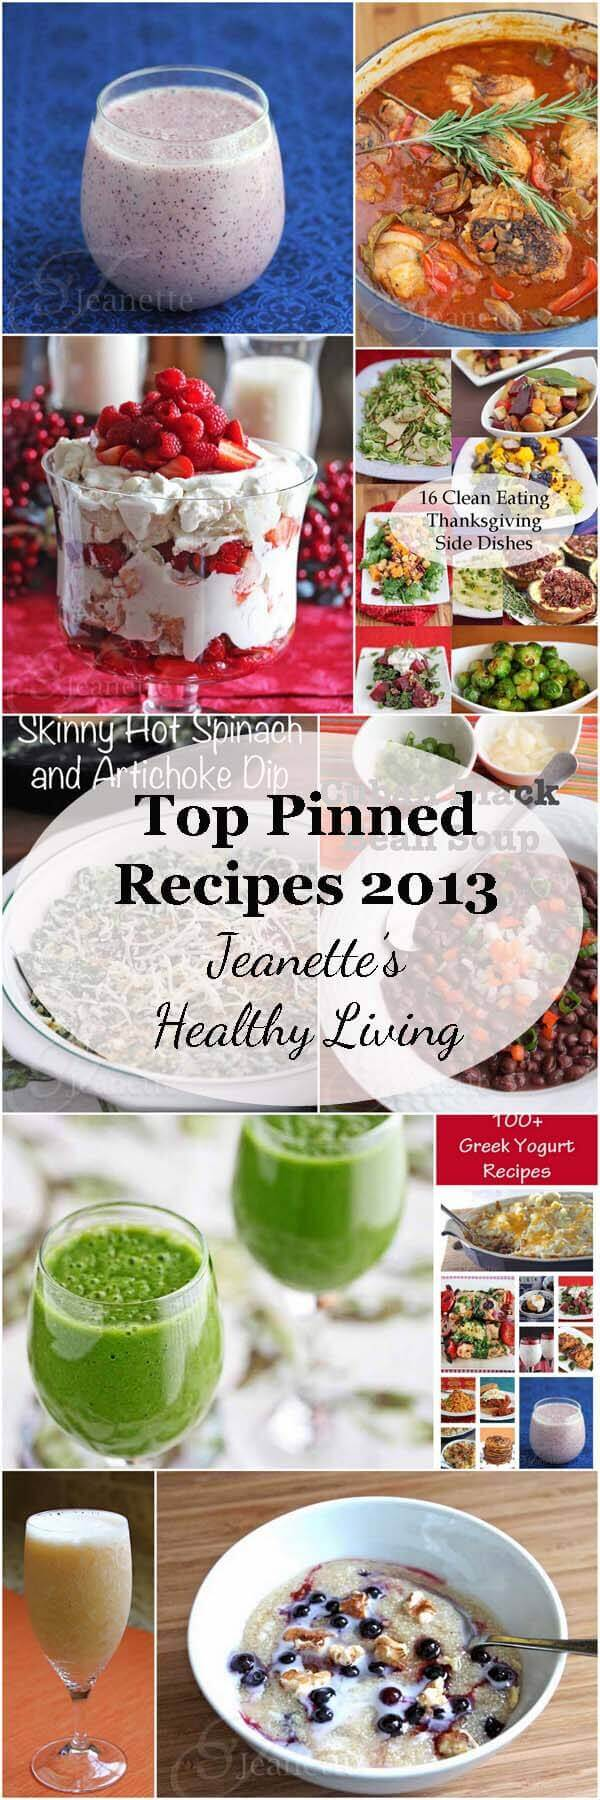 Top Pinned Recipes in 2013